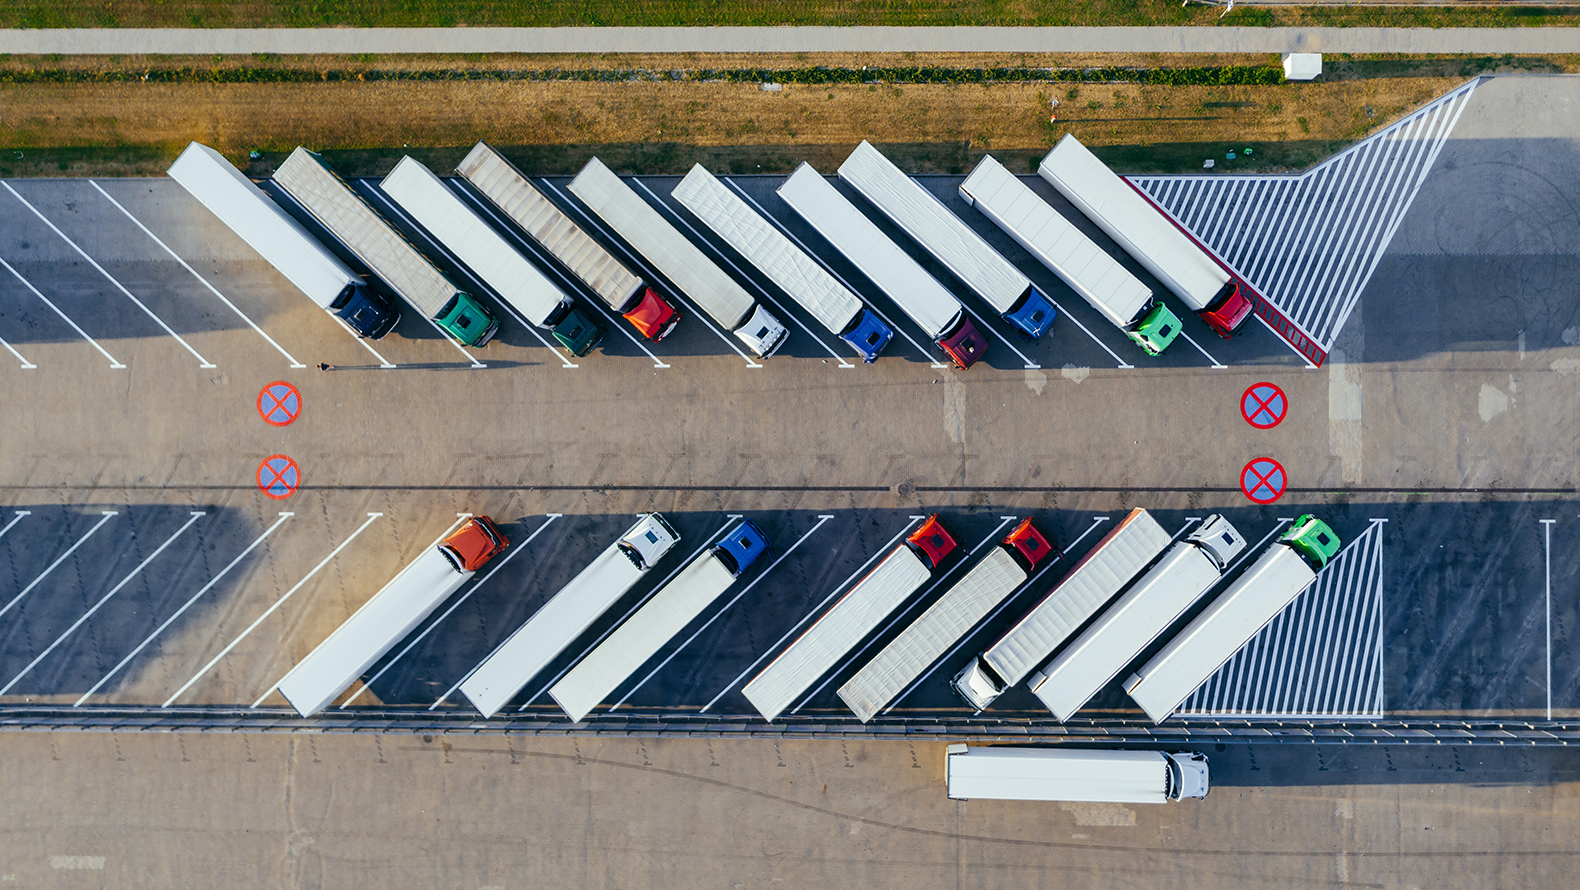 Aerial picture of trucks at a truck stop. Photo: Marcin Jozwiak, Pexels.